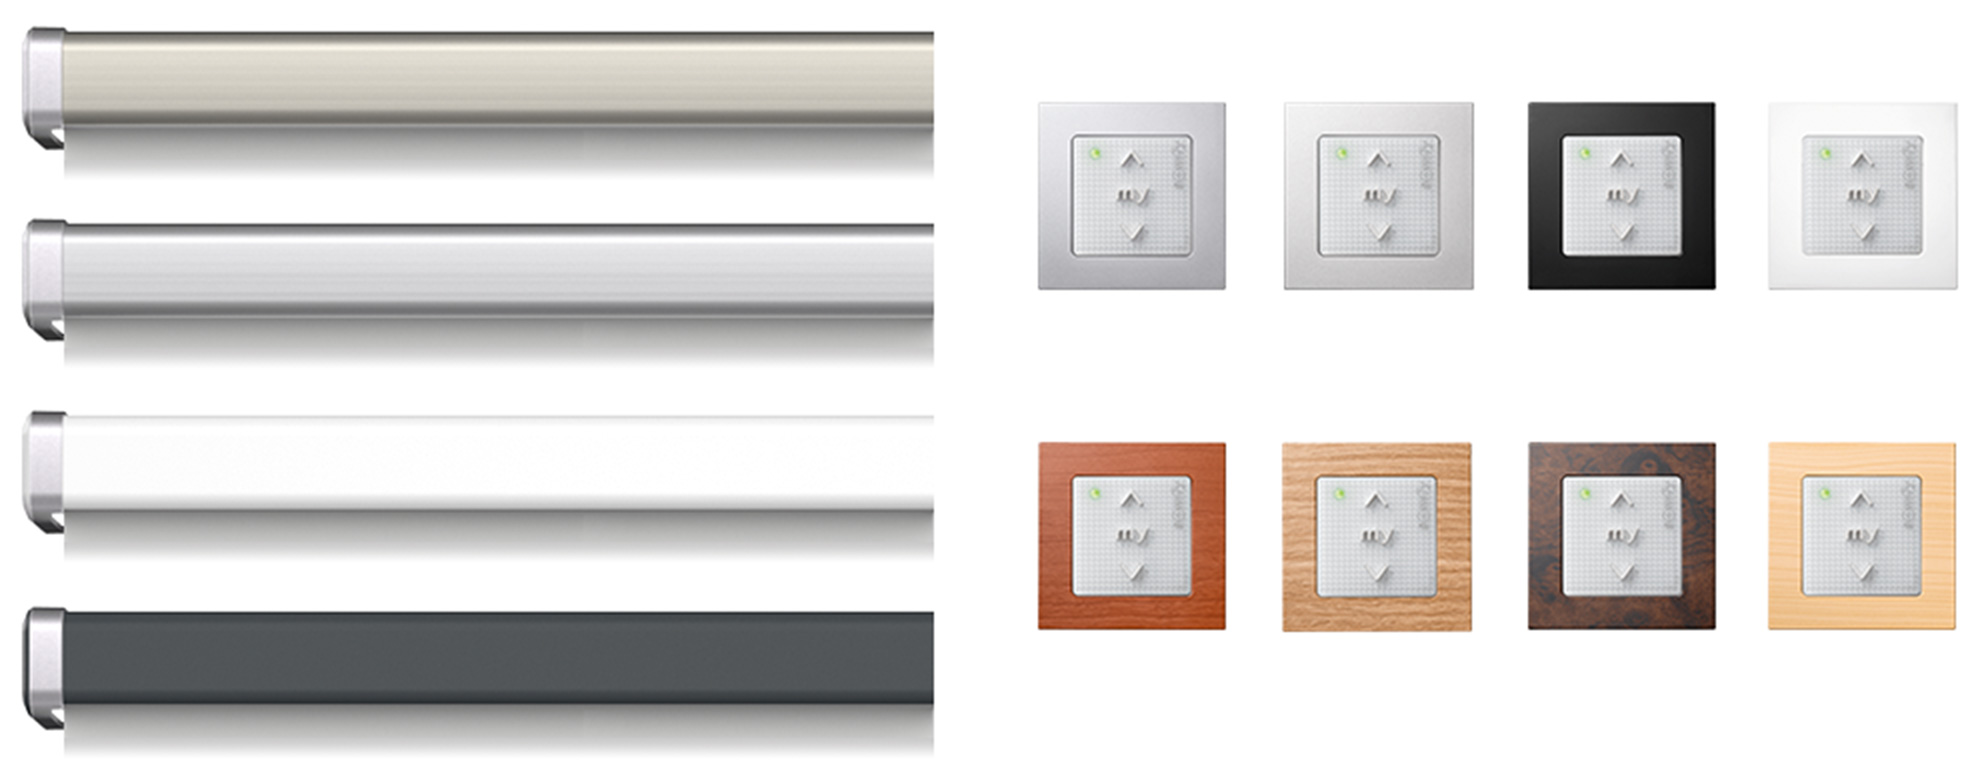 Titanium, aluminium, white and anthracite pelmets with eight wall switches in various metallic and wood effect finishes